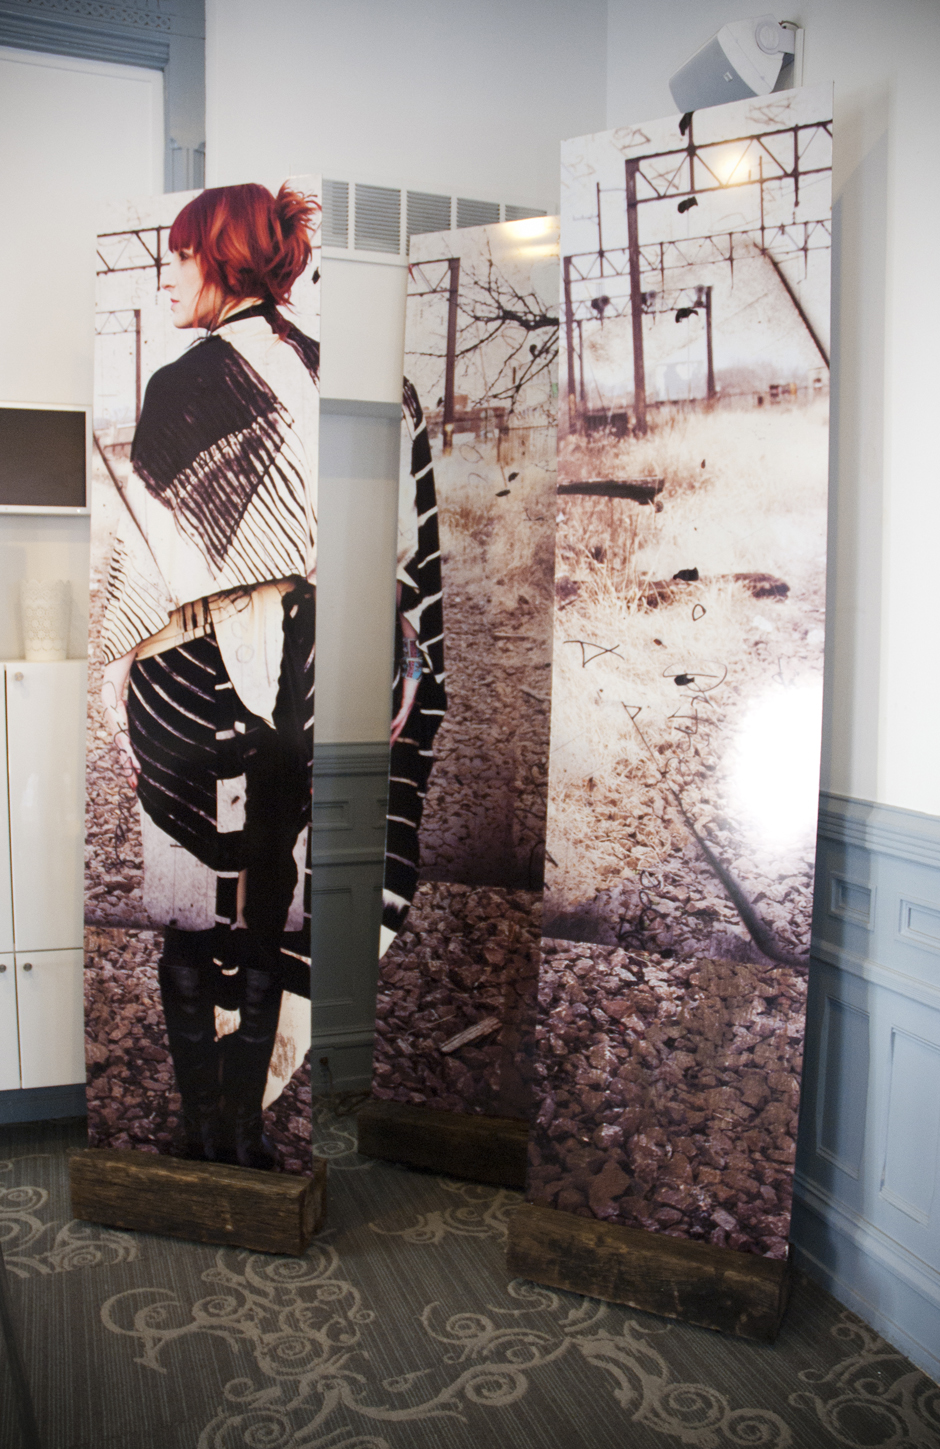 Surface, Fashion . Wallpaper panels depicting the work of  Melissa D'Agostino . Cityspace, Philadelphia, 2014.